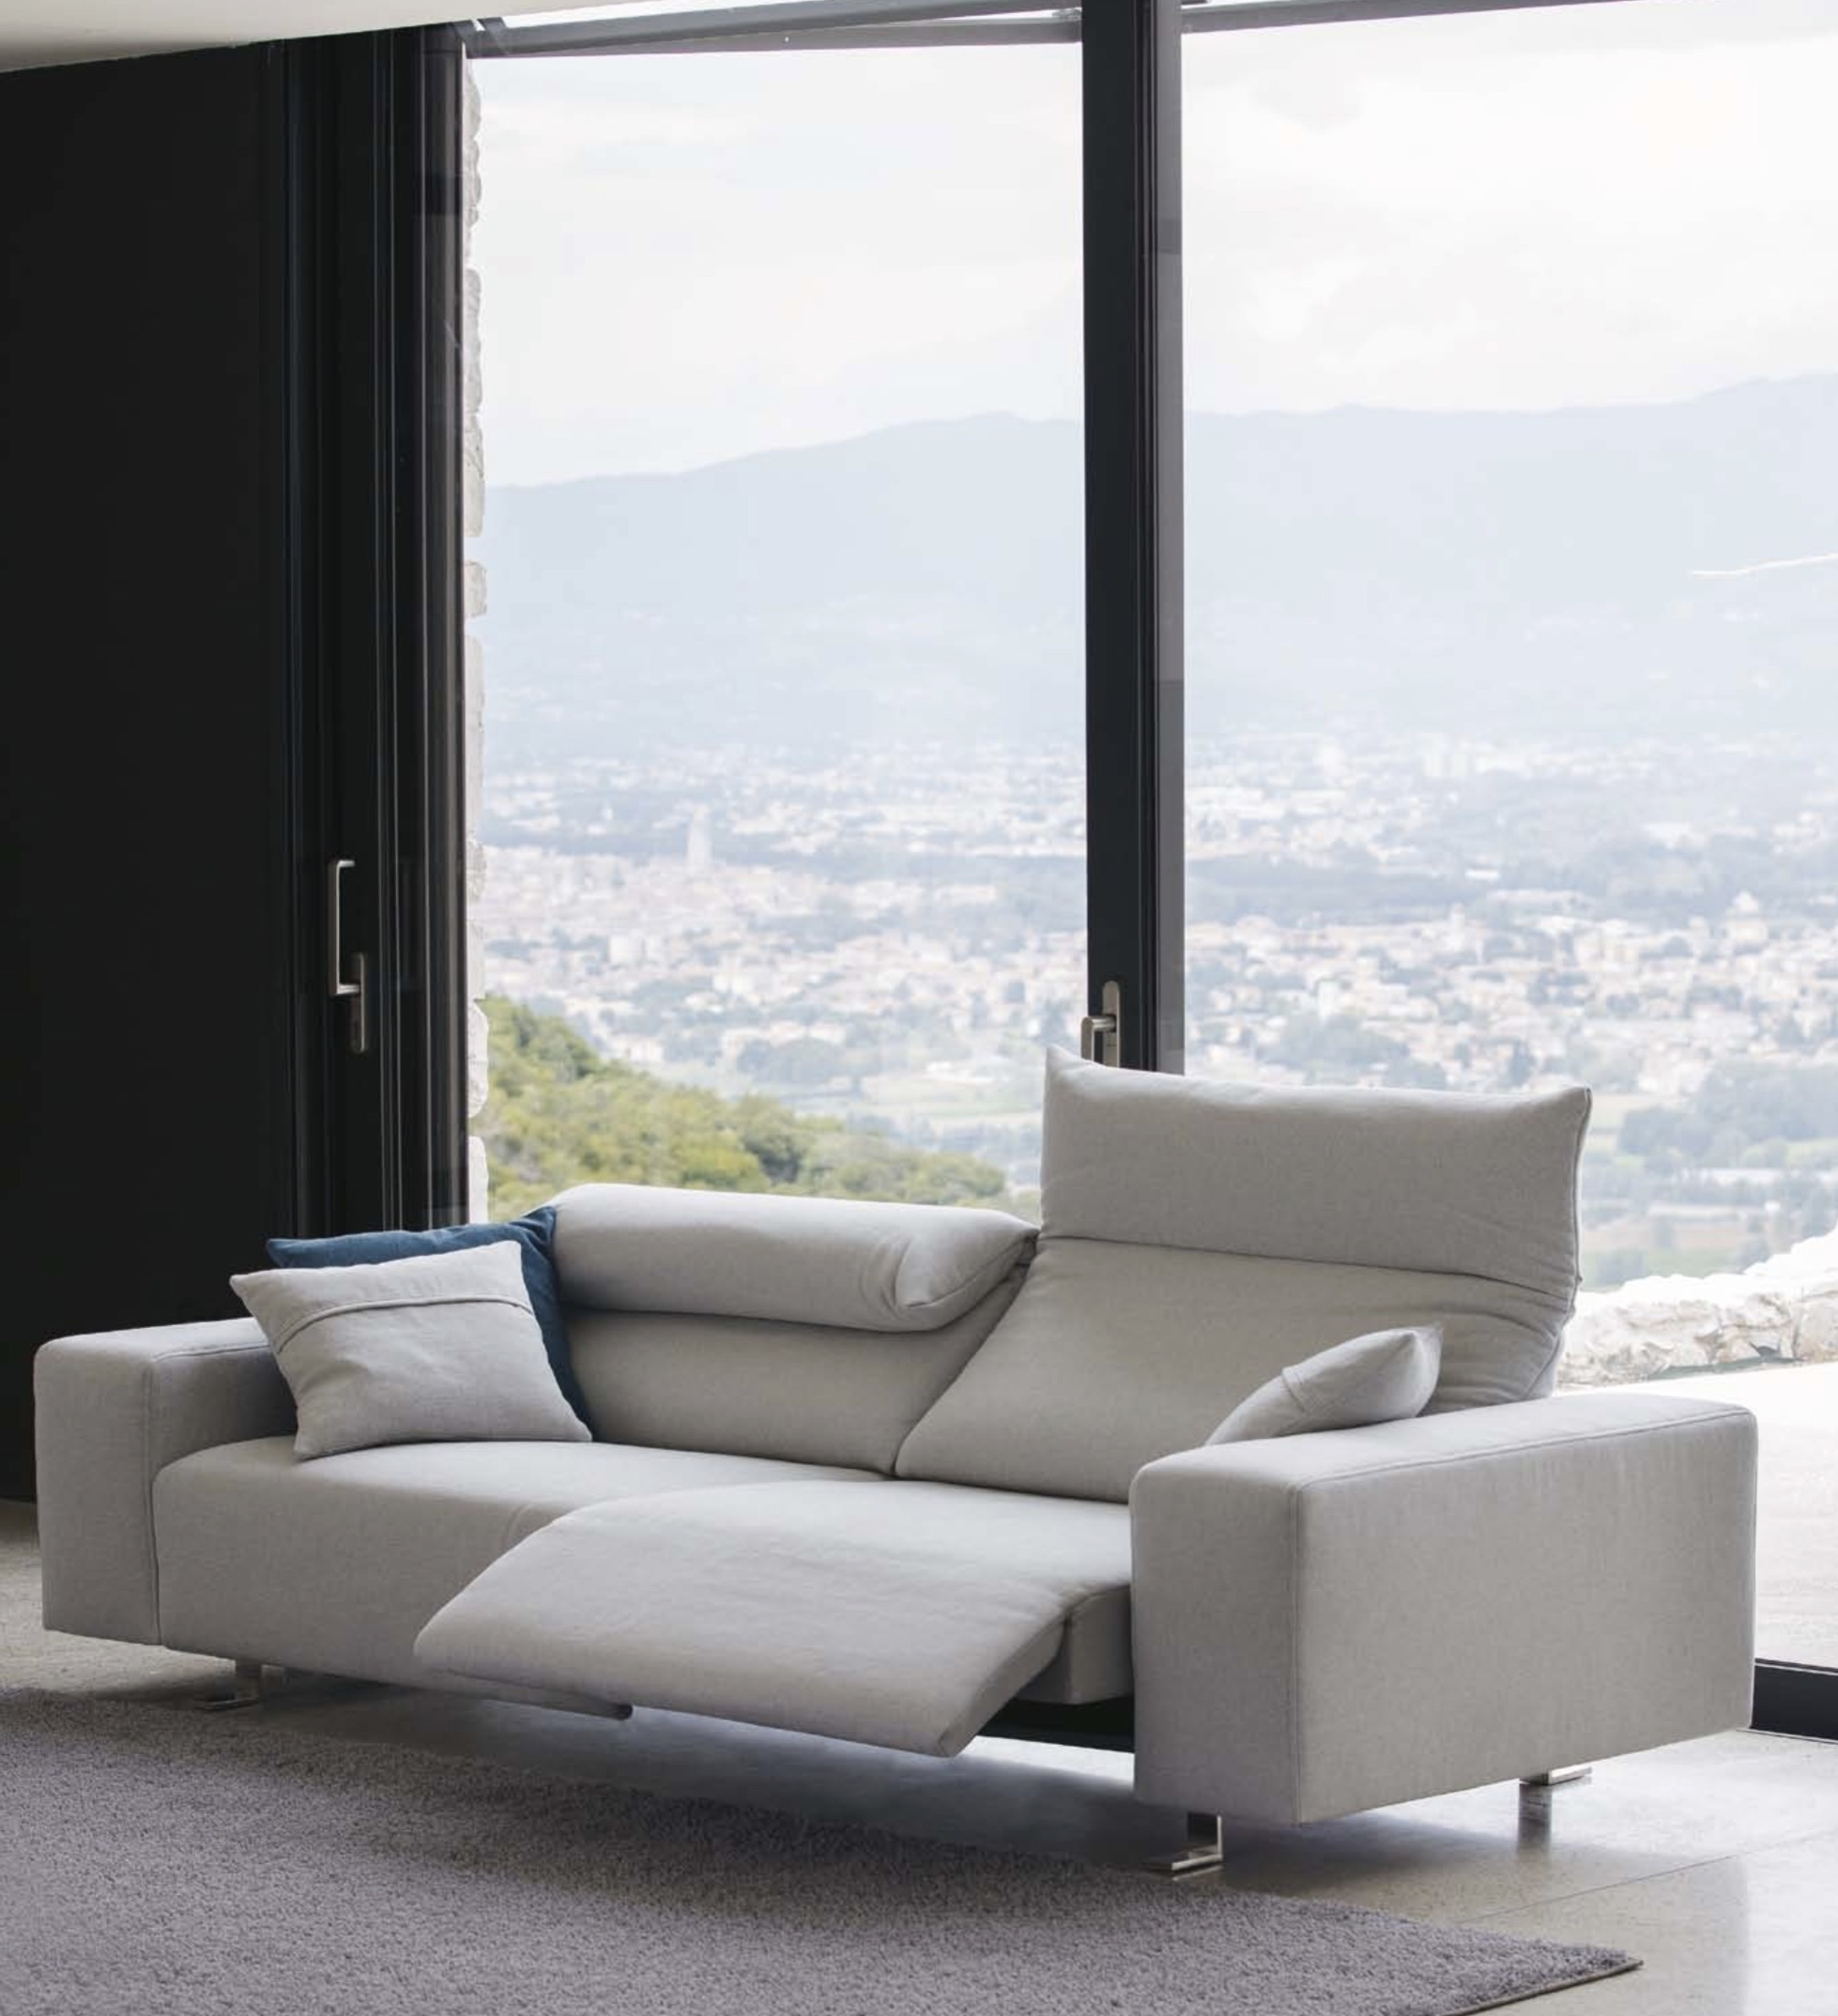 Italian Designed Furniture Inspirational Italian Sofas At With Regard To Famous Modern Sofas (View 10 of 15)